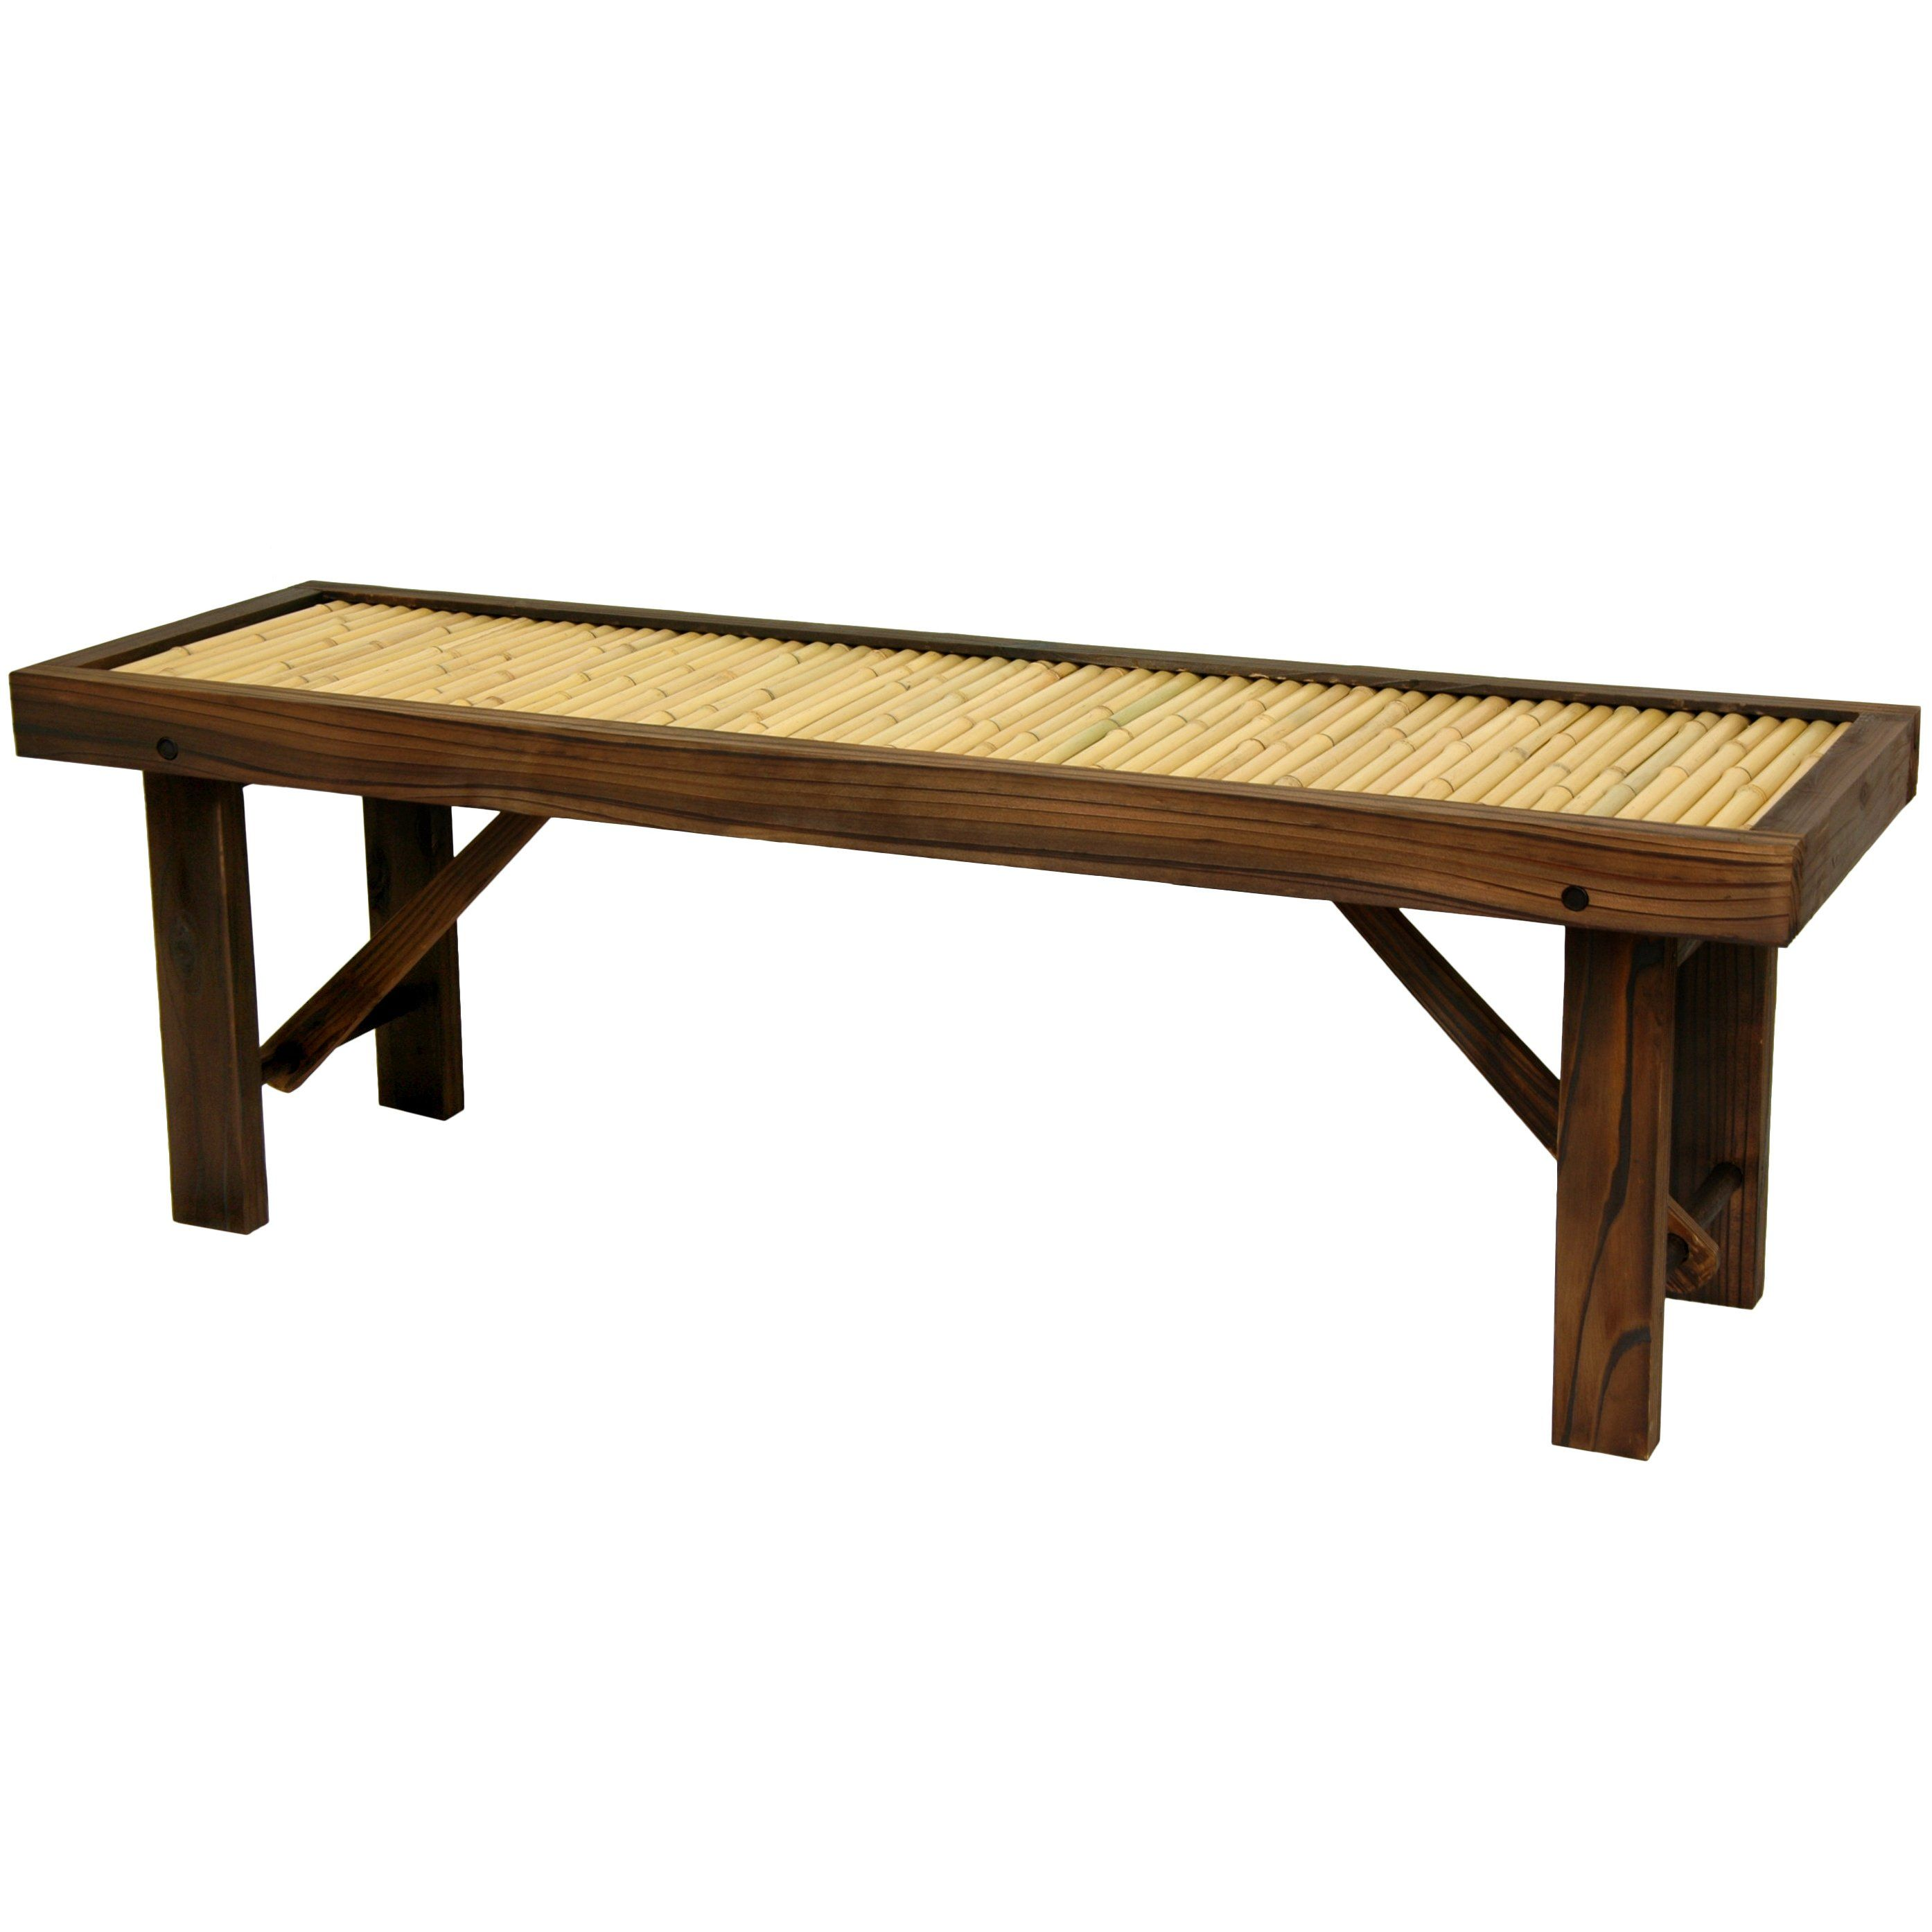 This flat japanese style bamboo bench is beautifully accented with dark walnut wood the kiln dried frame has sturdy block legs and extra center beam for